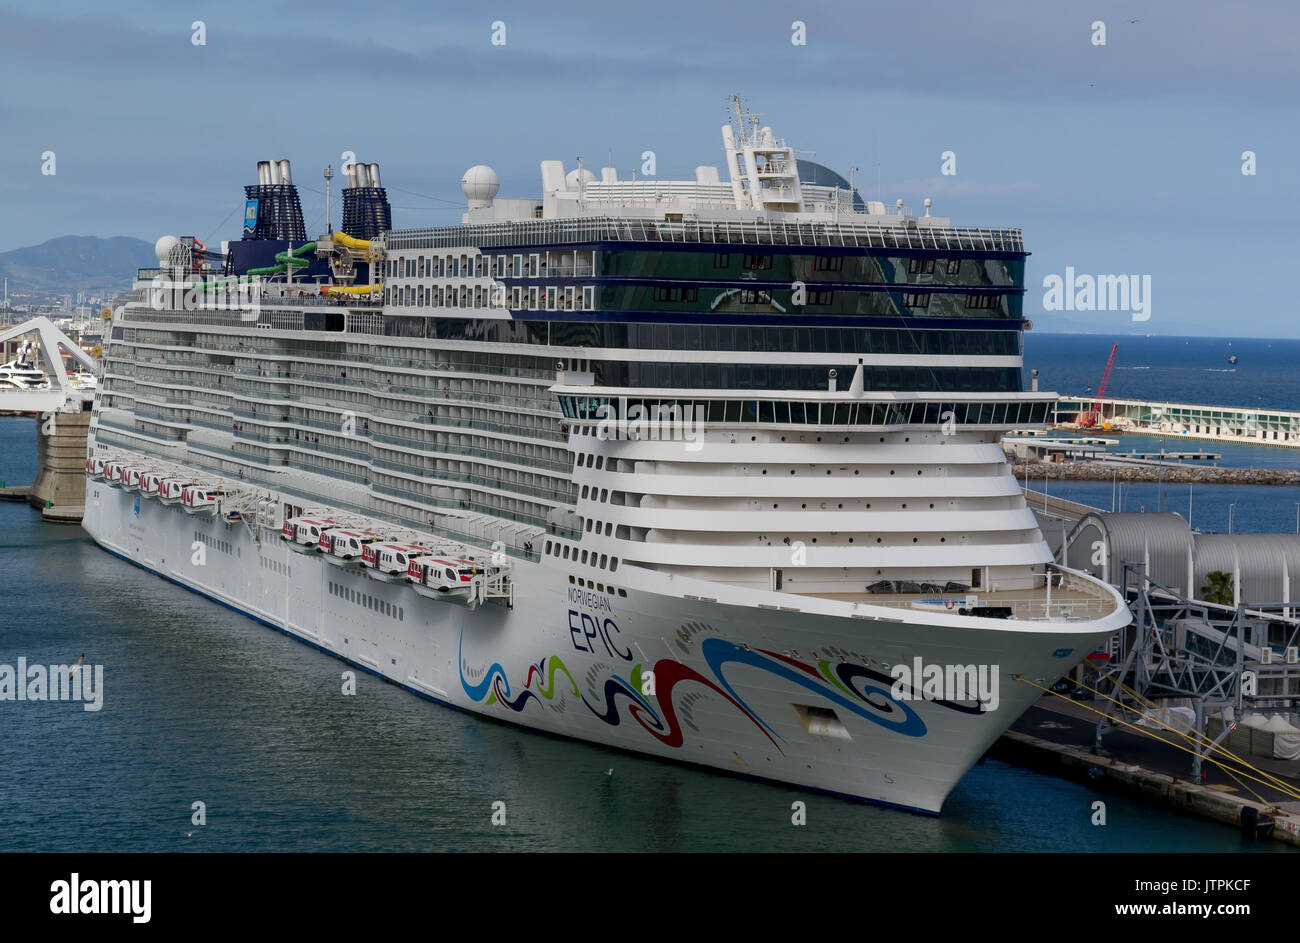 Norwegian Epic, Norwegian Cruise Line  - Barcelona, Spain - 07 May, 2017: Cruise ship is ready to leave for a 7 night Mediterranean journey. - Stock Image